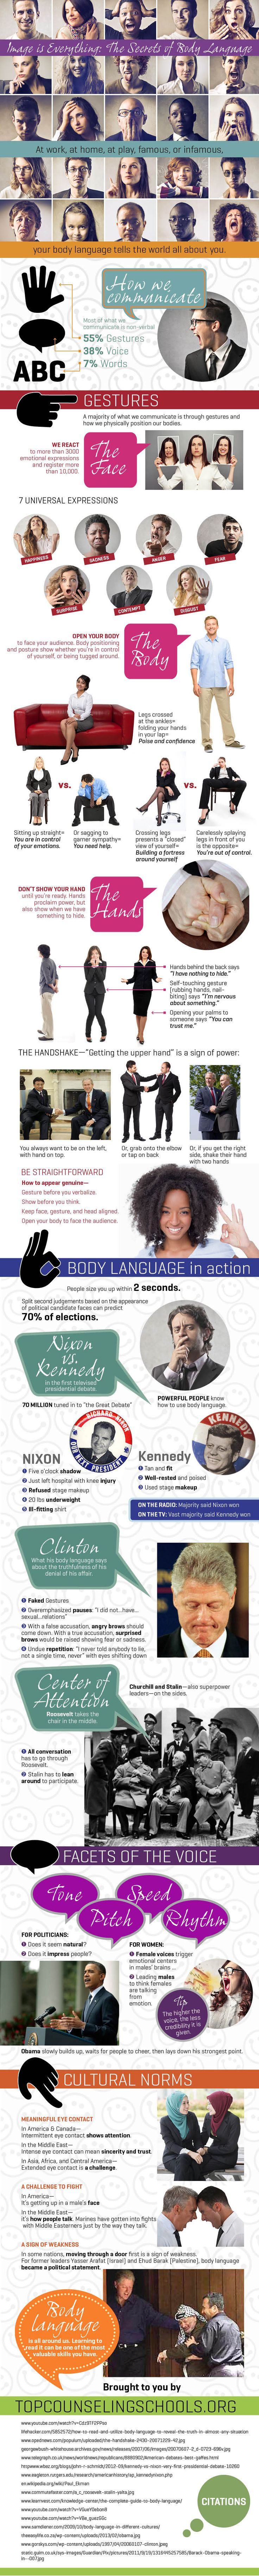 Image is Everything: The Secrets of Body Language | Top Counseling Schools